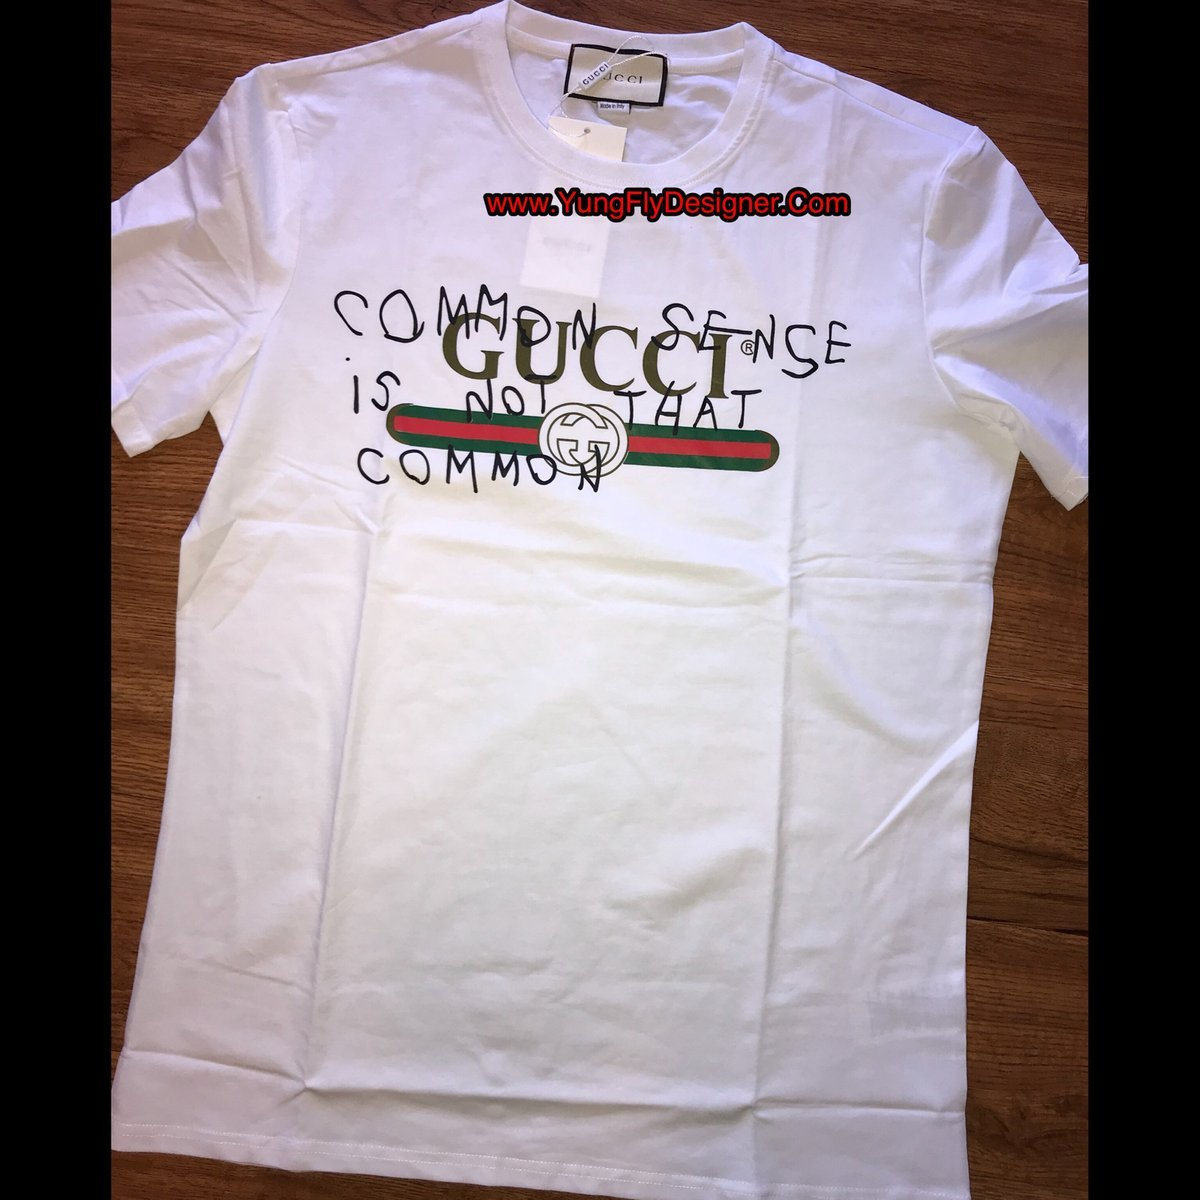 72fb9f6a Common Sense Is Not That Common Gucci T-Shirt - $85.00 – Young Fly ...